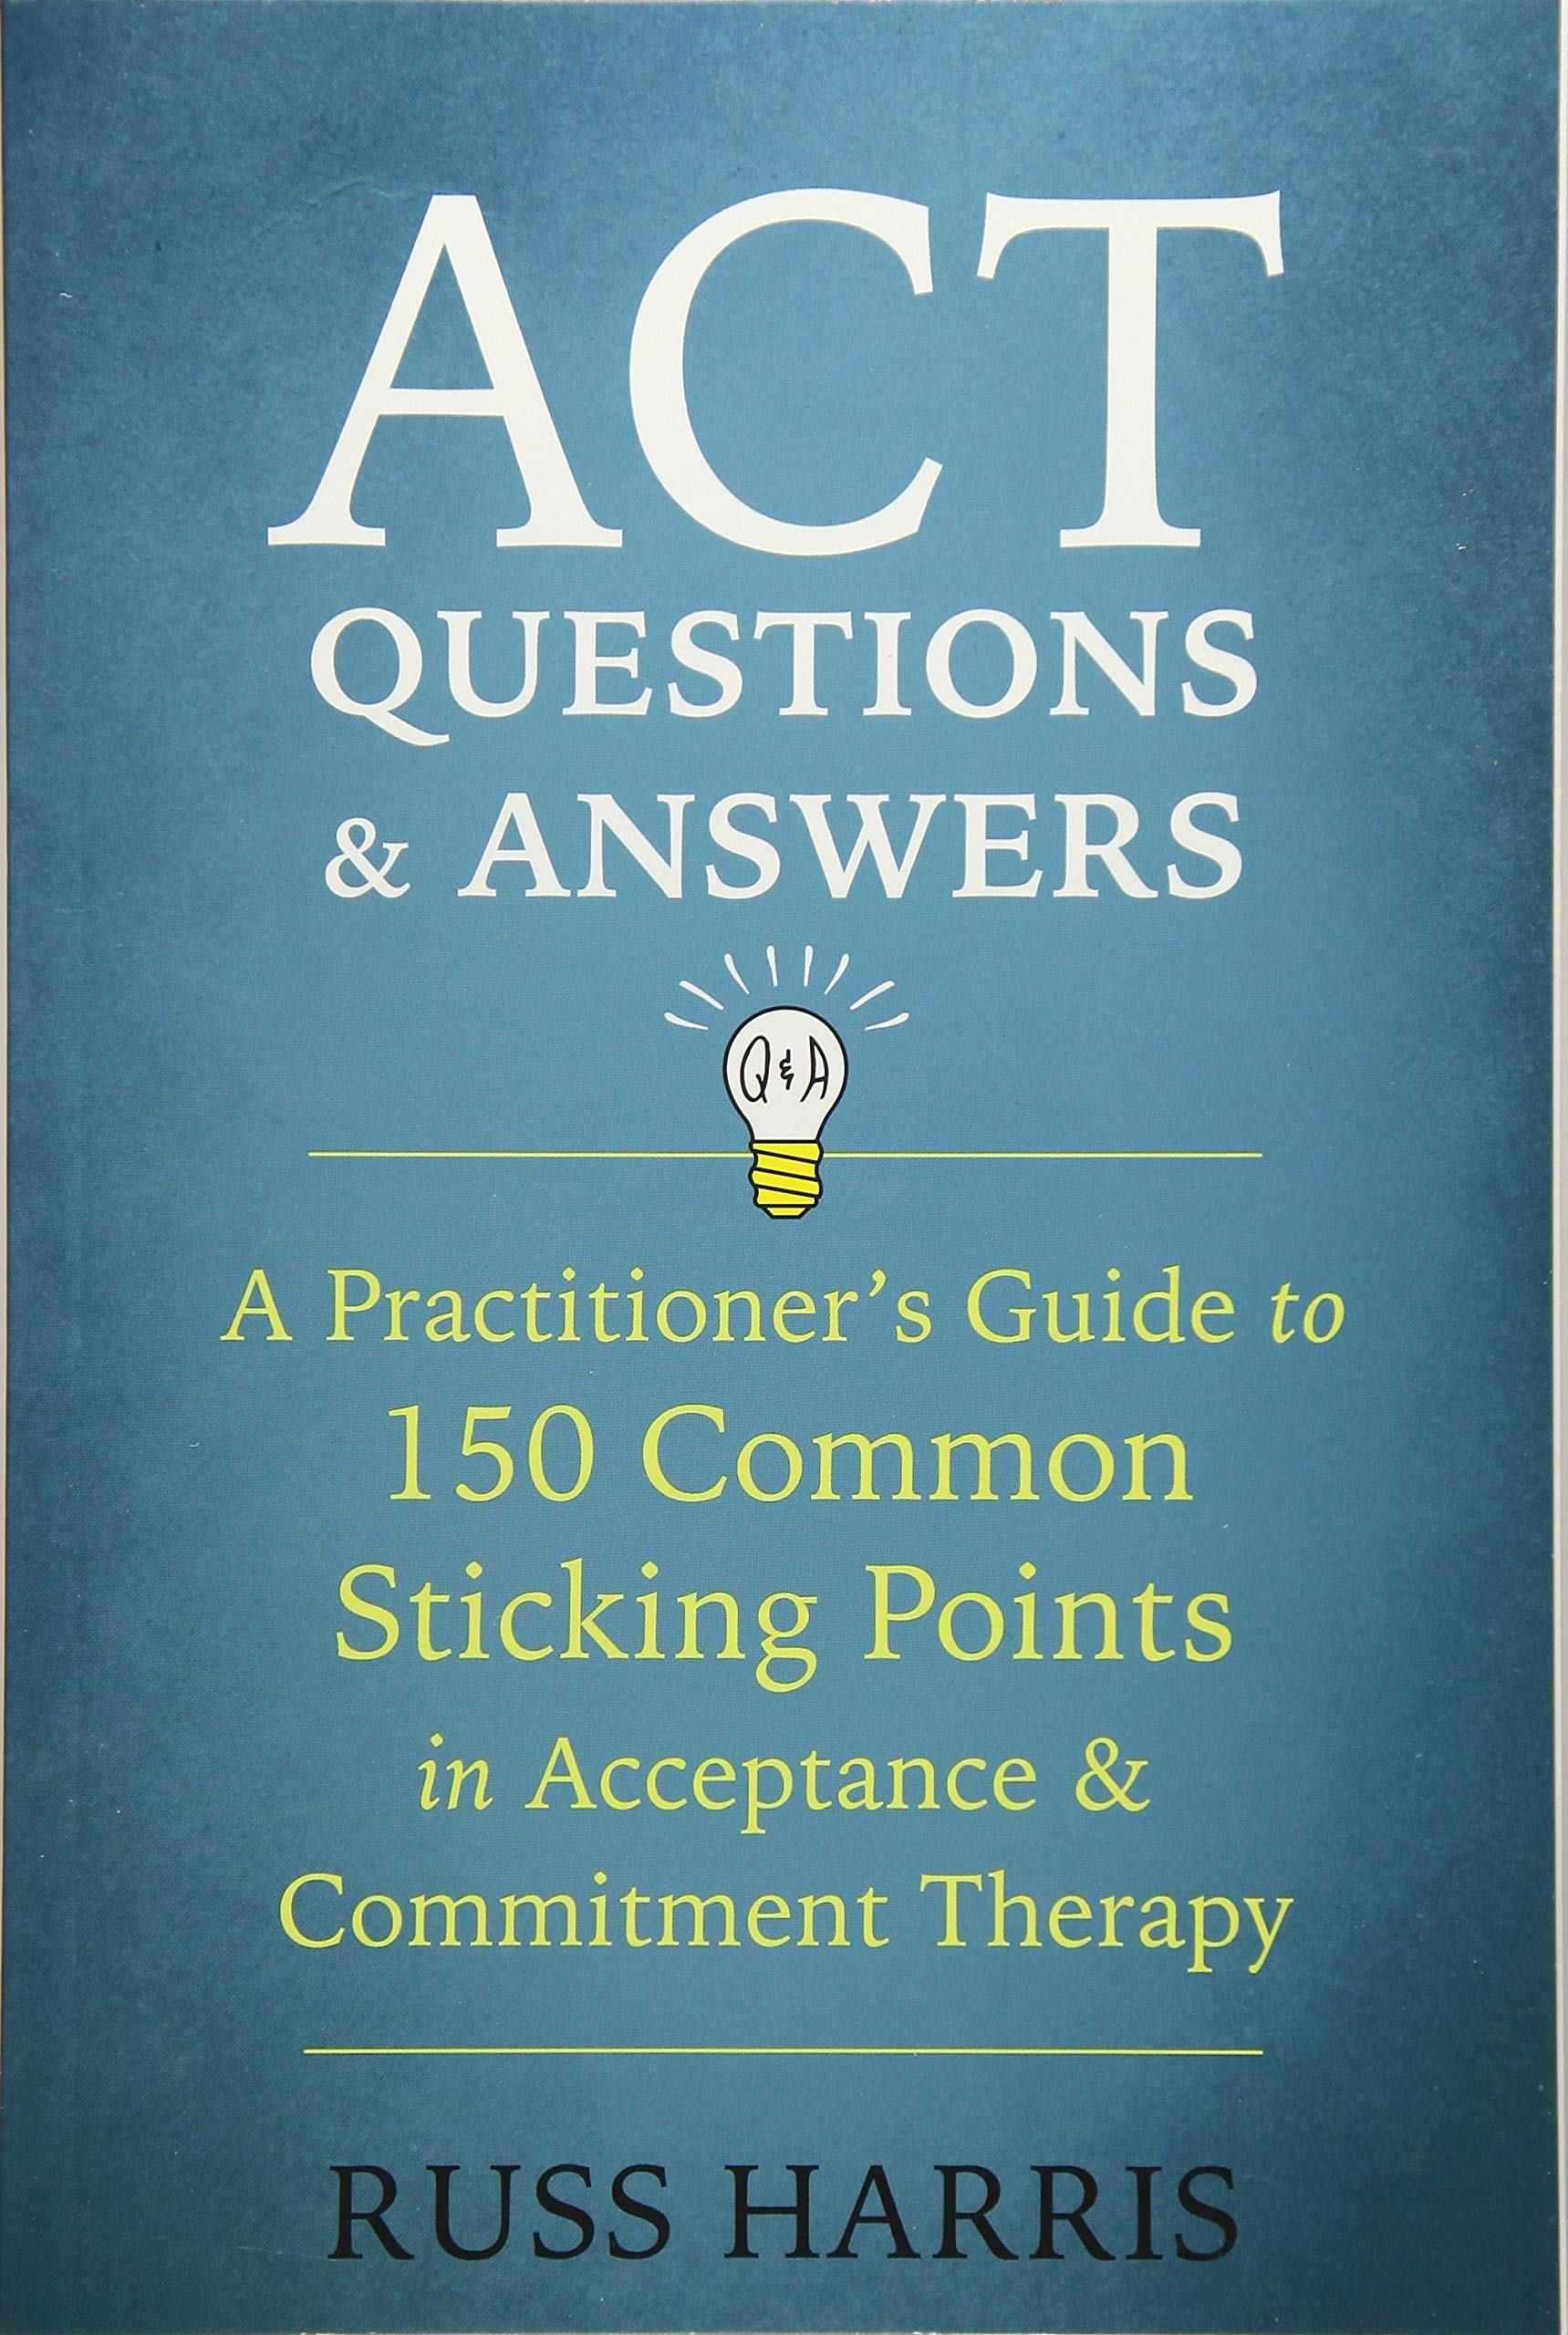 Amazon.com: ACT Questions and Answers: A Practitioner\'s Guide to 150 ...